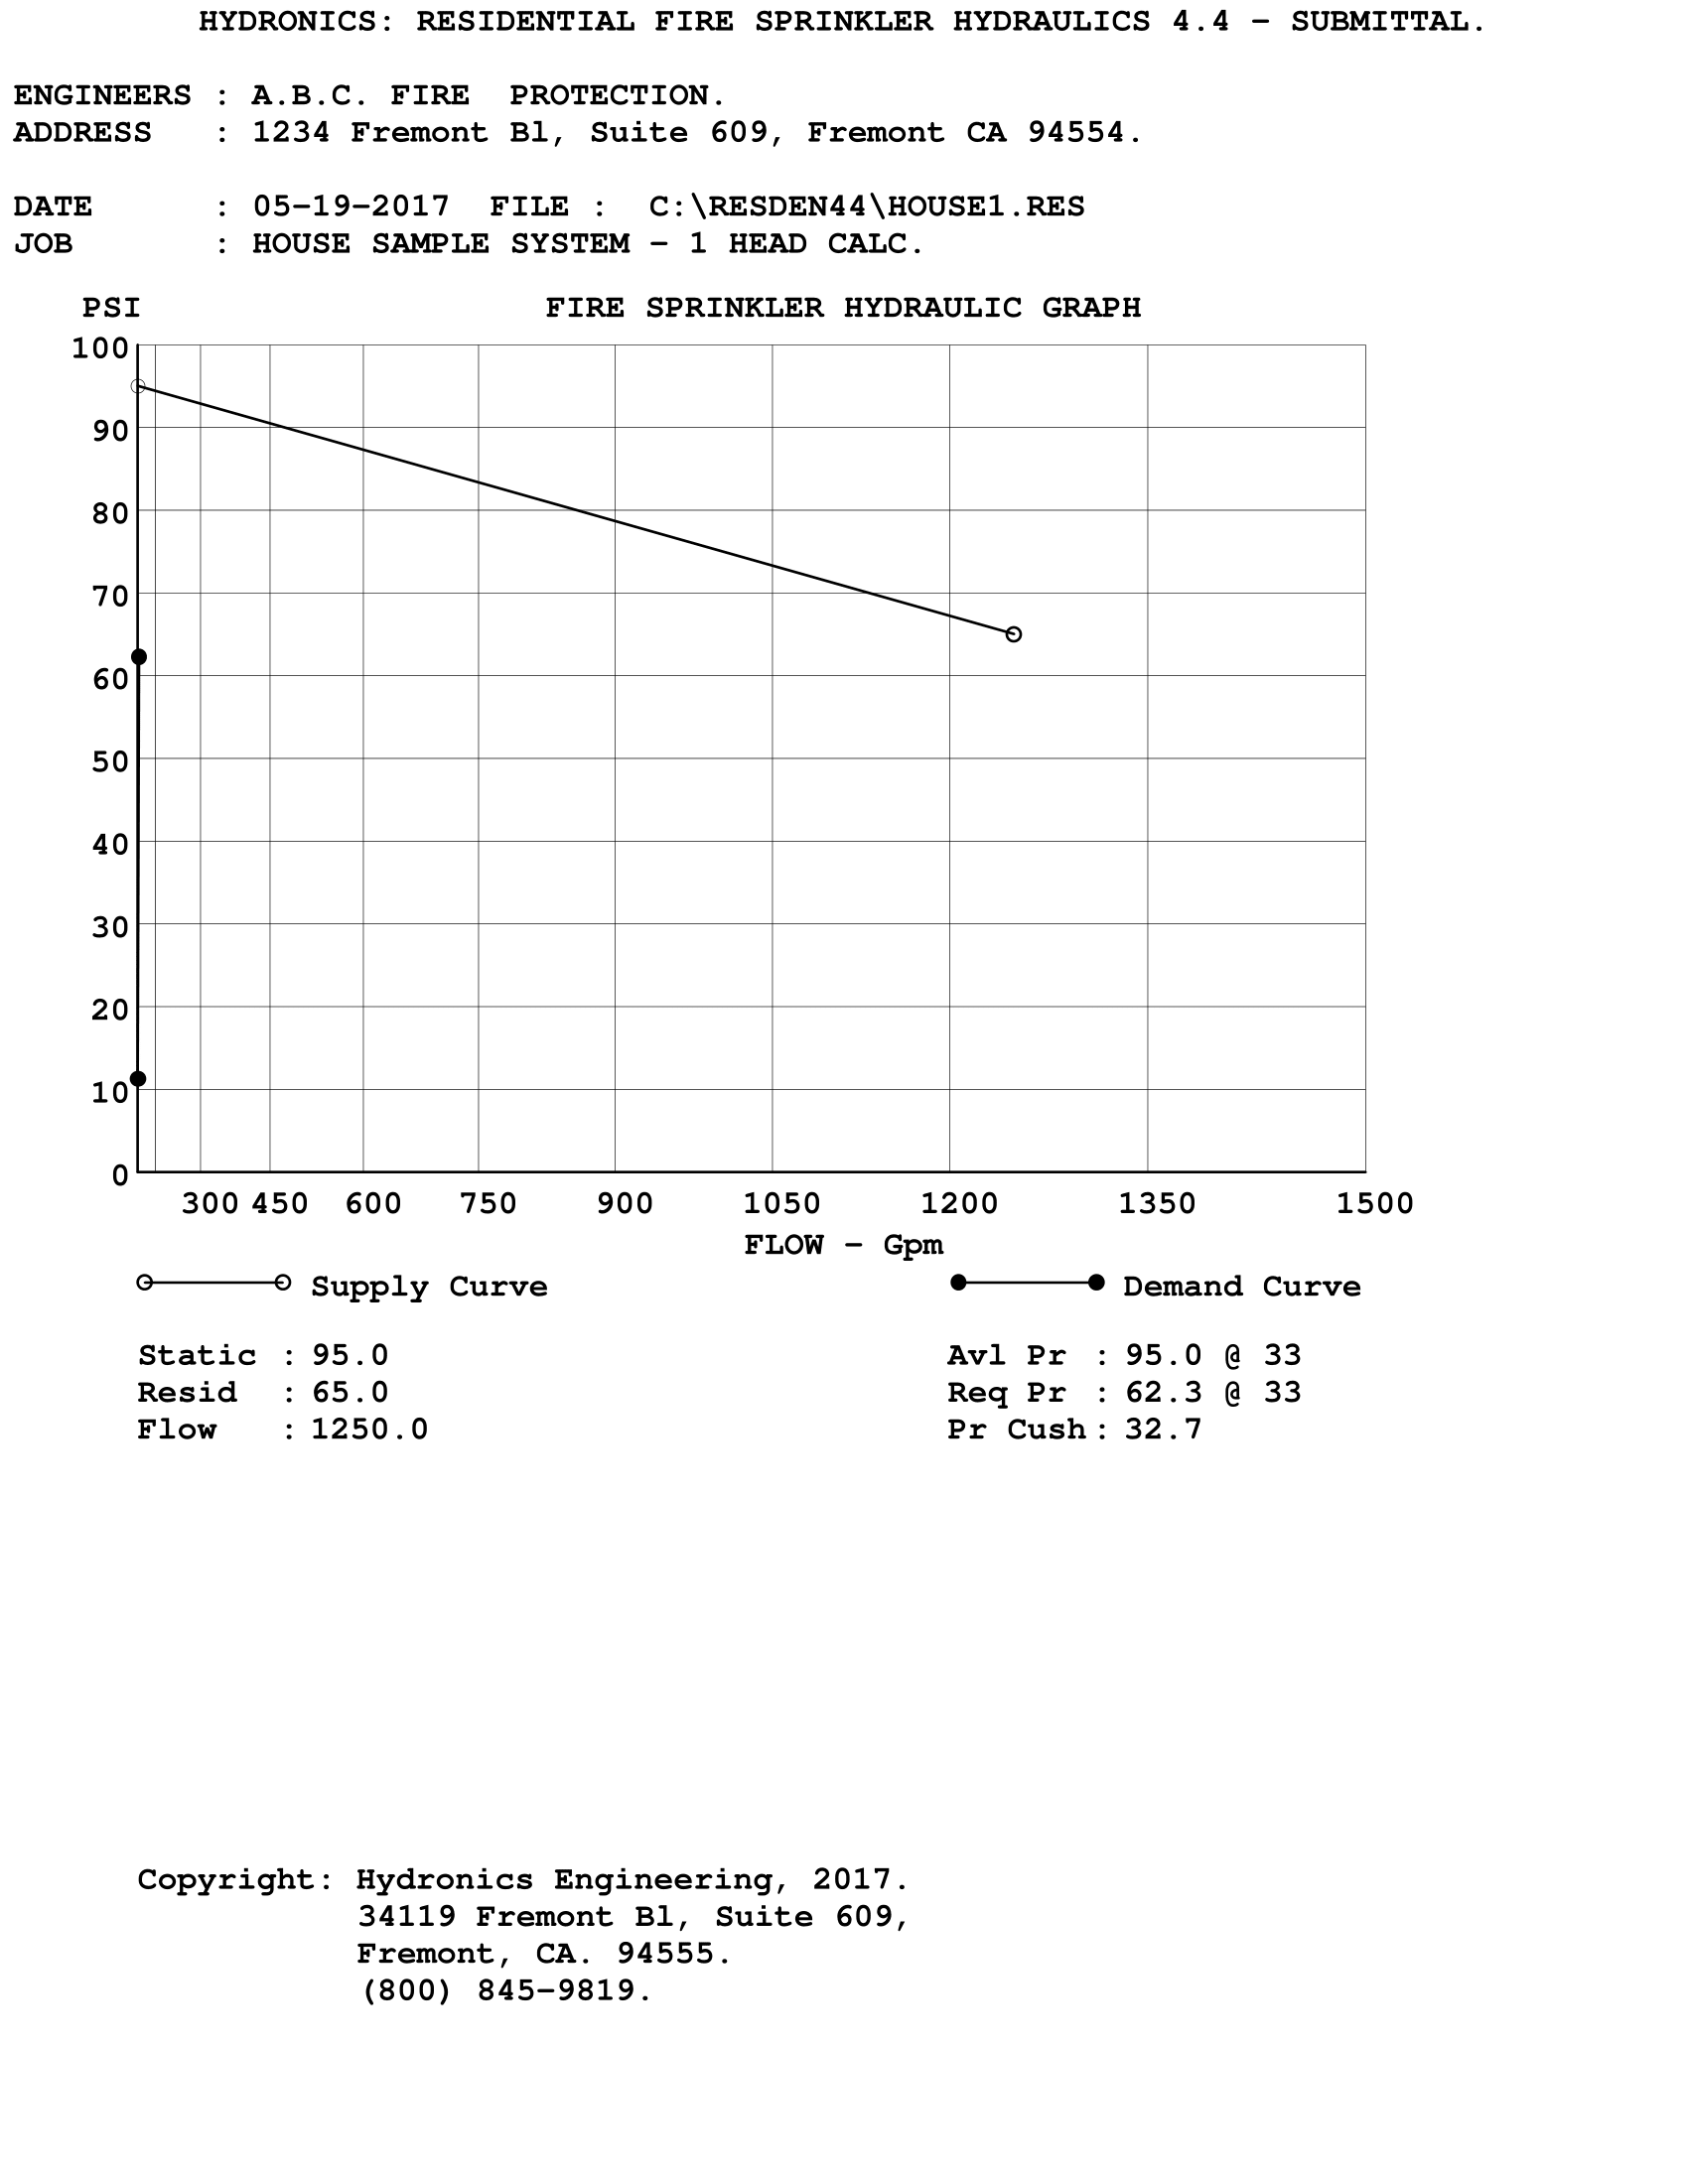 Submittal Graph